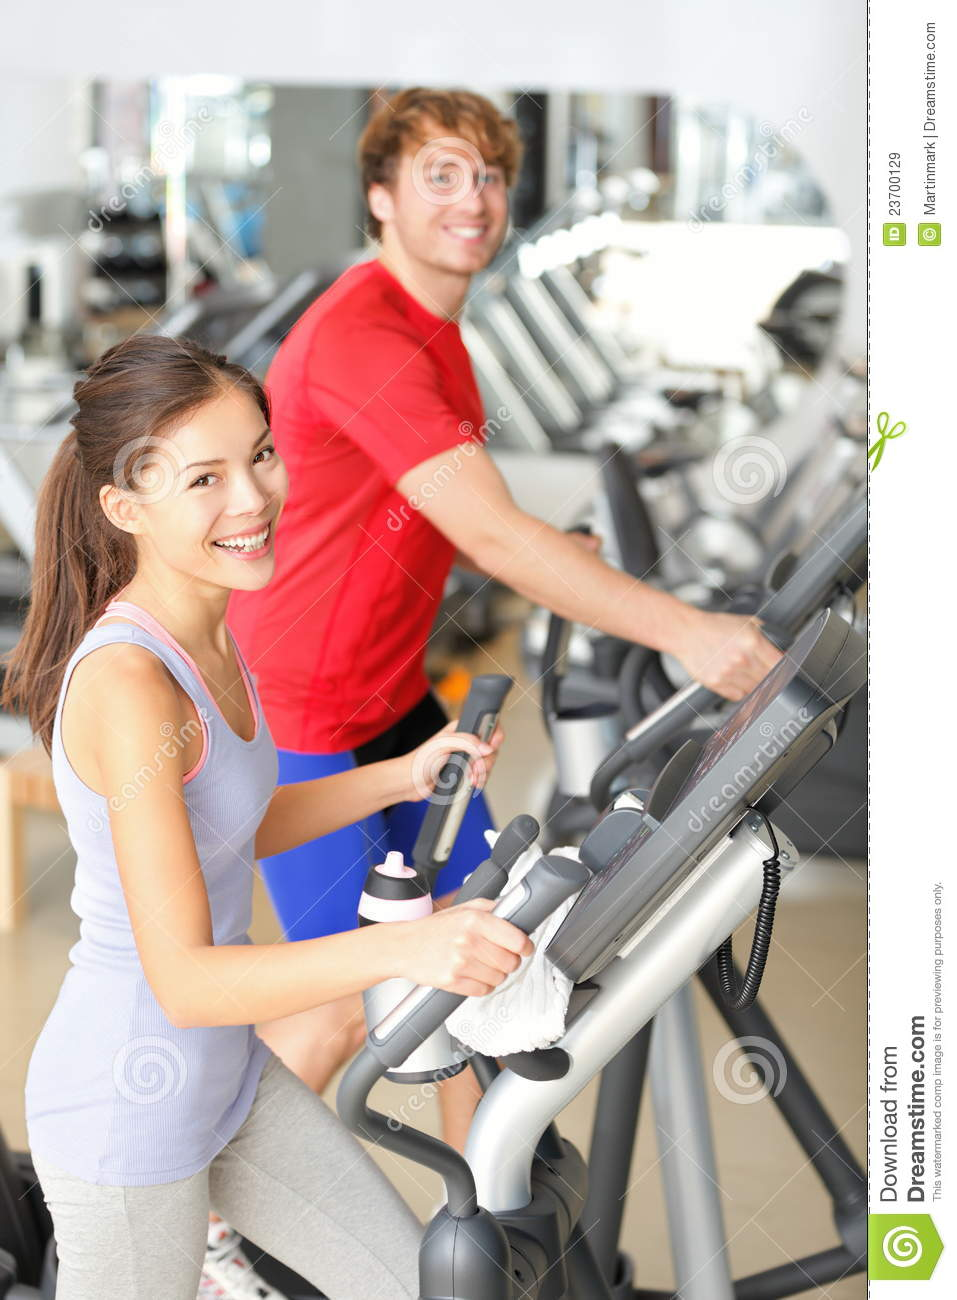 Physical exercise stock photo. Image of person, health